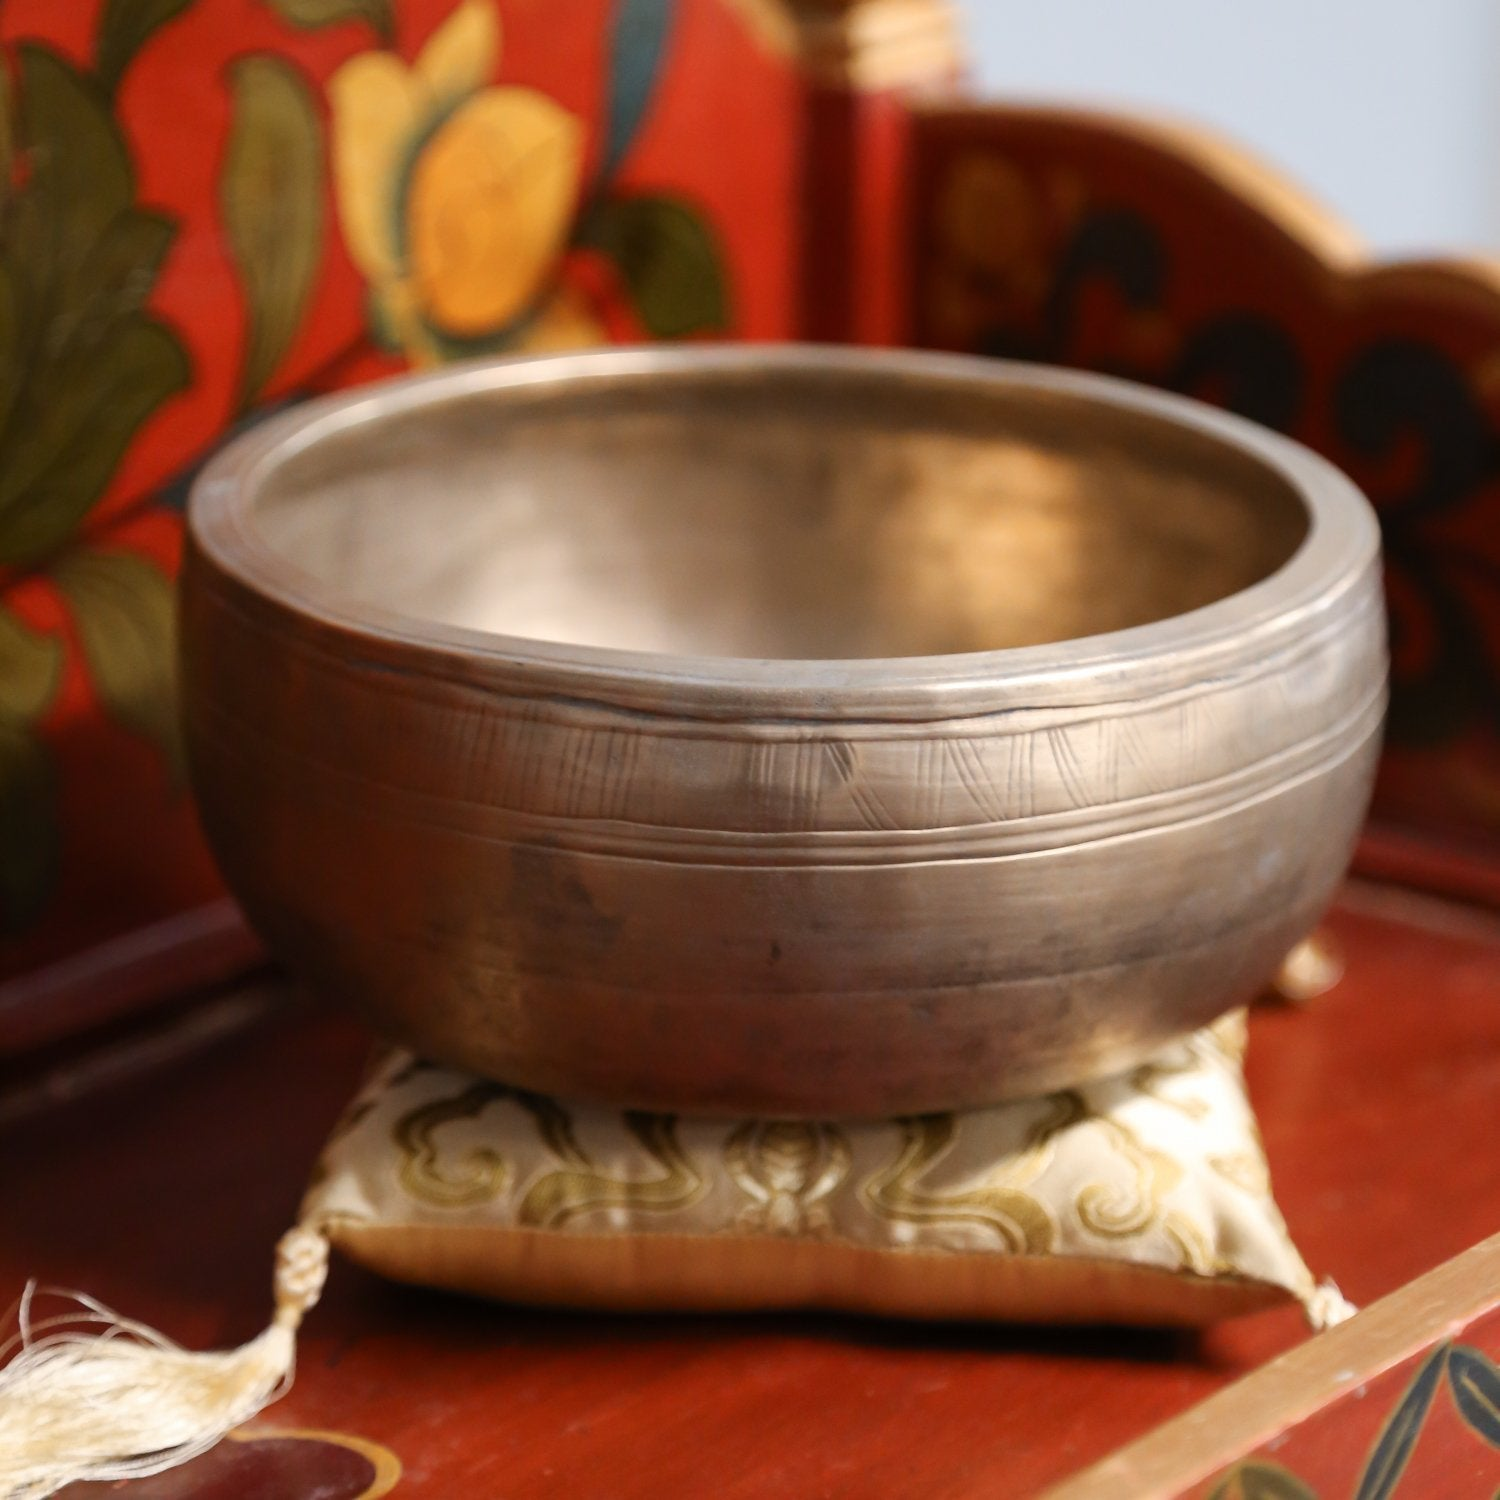 Singing Bowls Intuition and Insight Singing Bowl oldbowl311